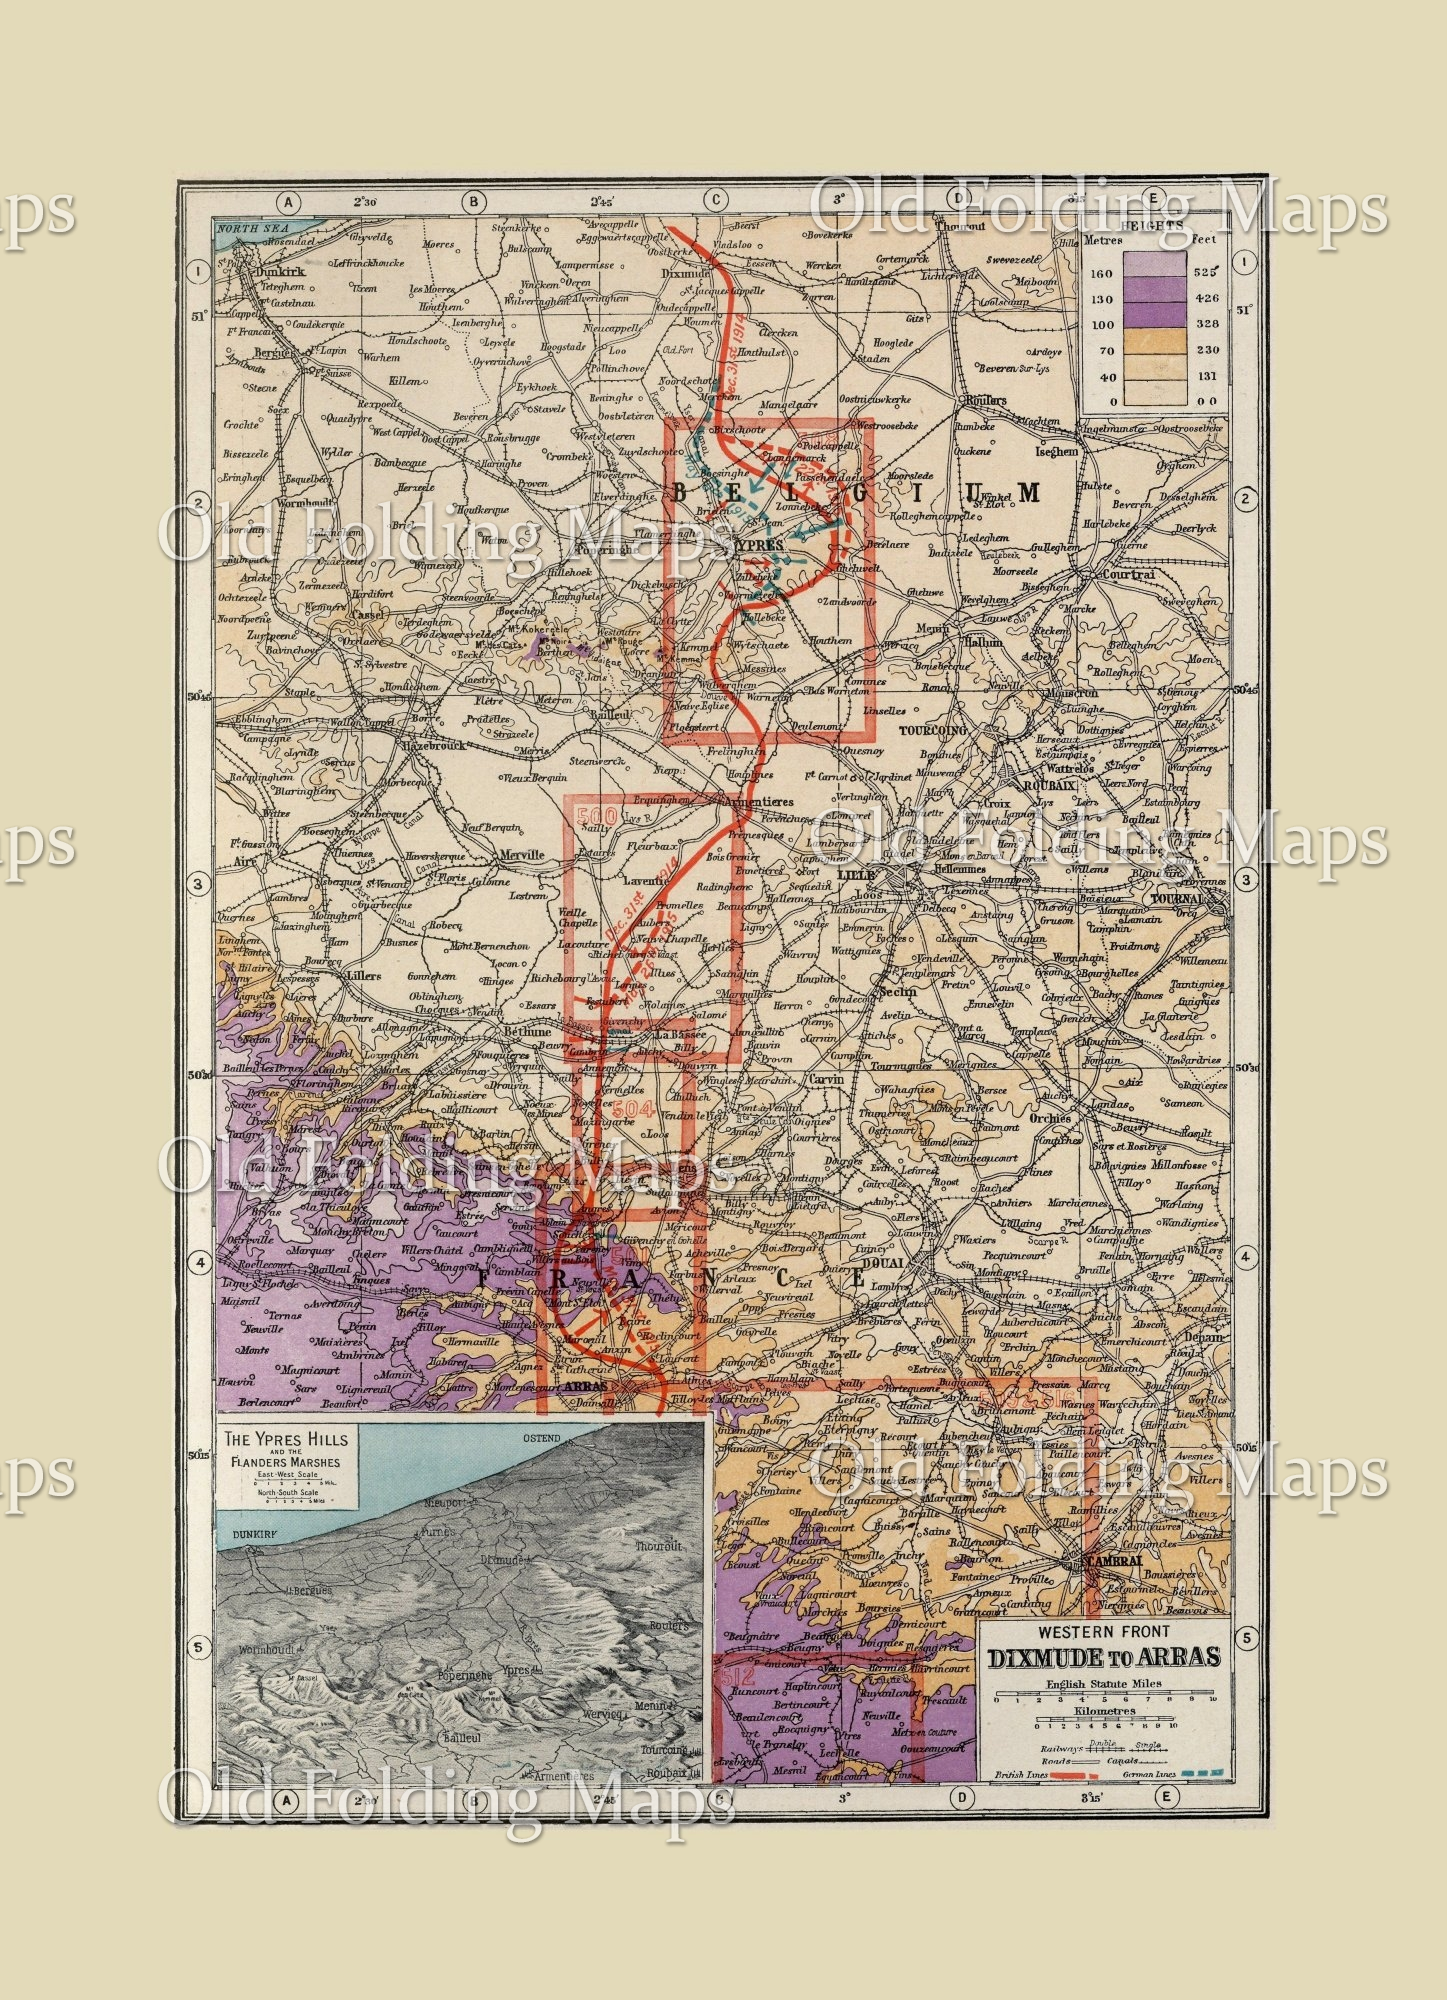 Map Of Western France.World War One Map Of The Western Front Dixmunde To Arras Belgium